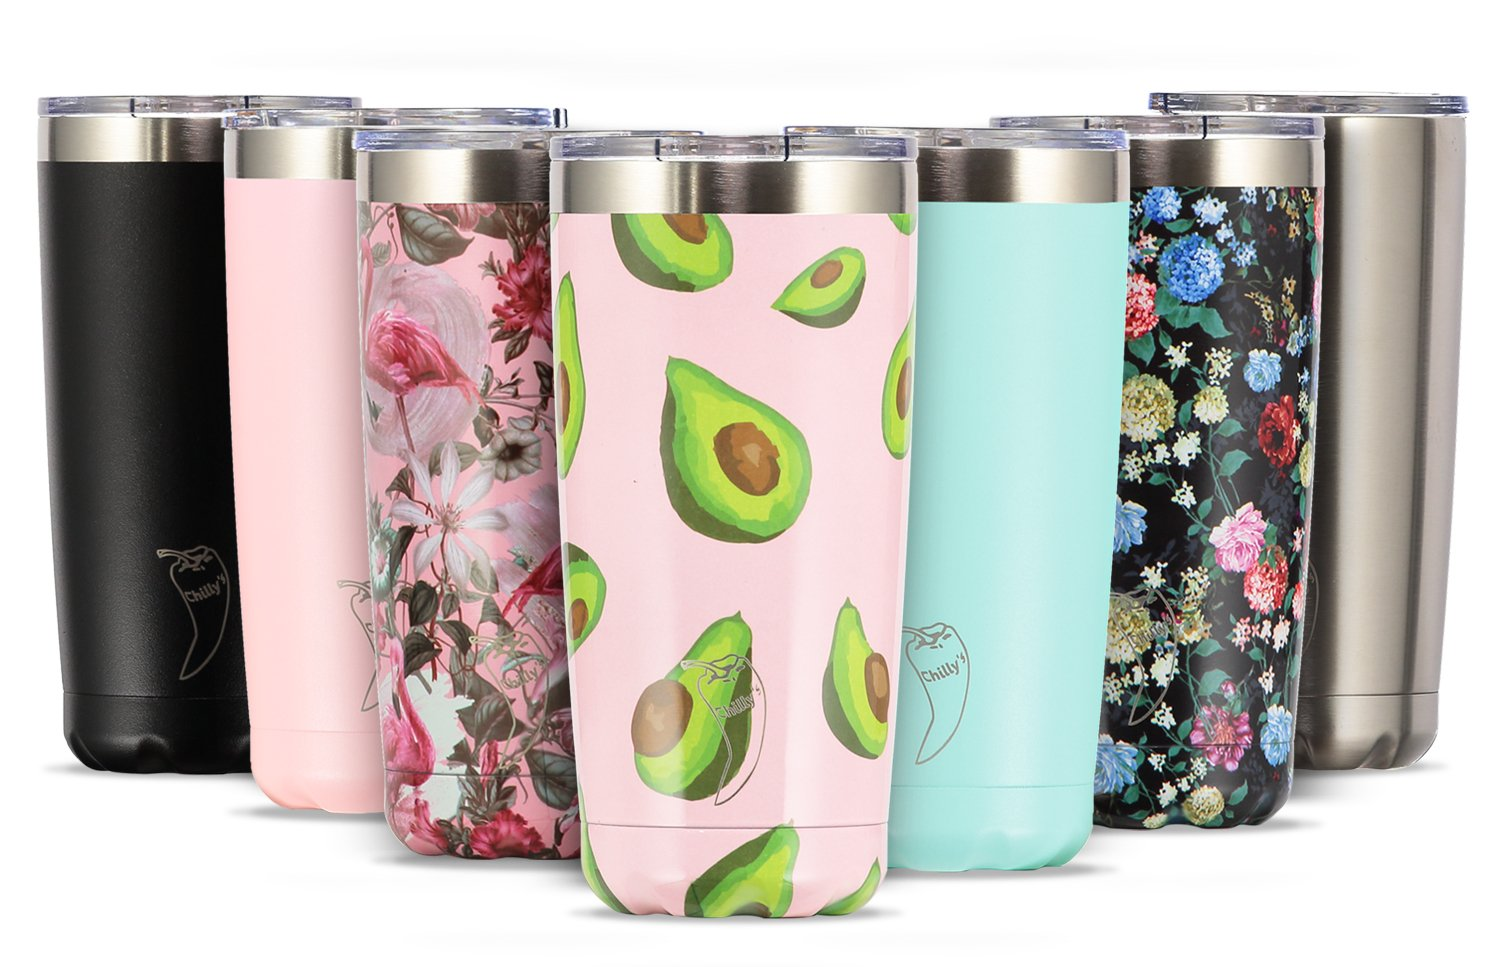 Chilly's Tumbler | Thermos Made With Stainless Steel | Double-Walled Container | Insulated for Hot or Cold Drink Storage | Reusable and Earth Friendly | Comes With a Lid | 500ml Chillys CHILLY086